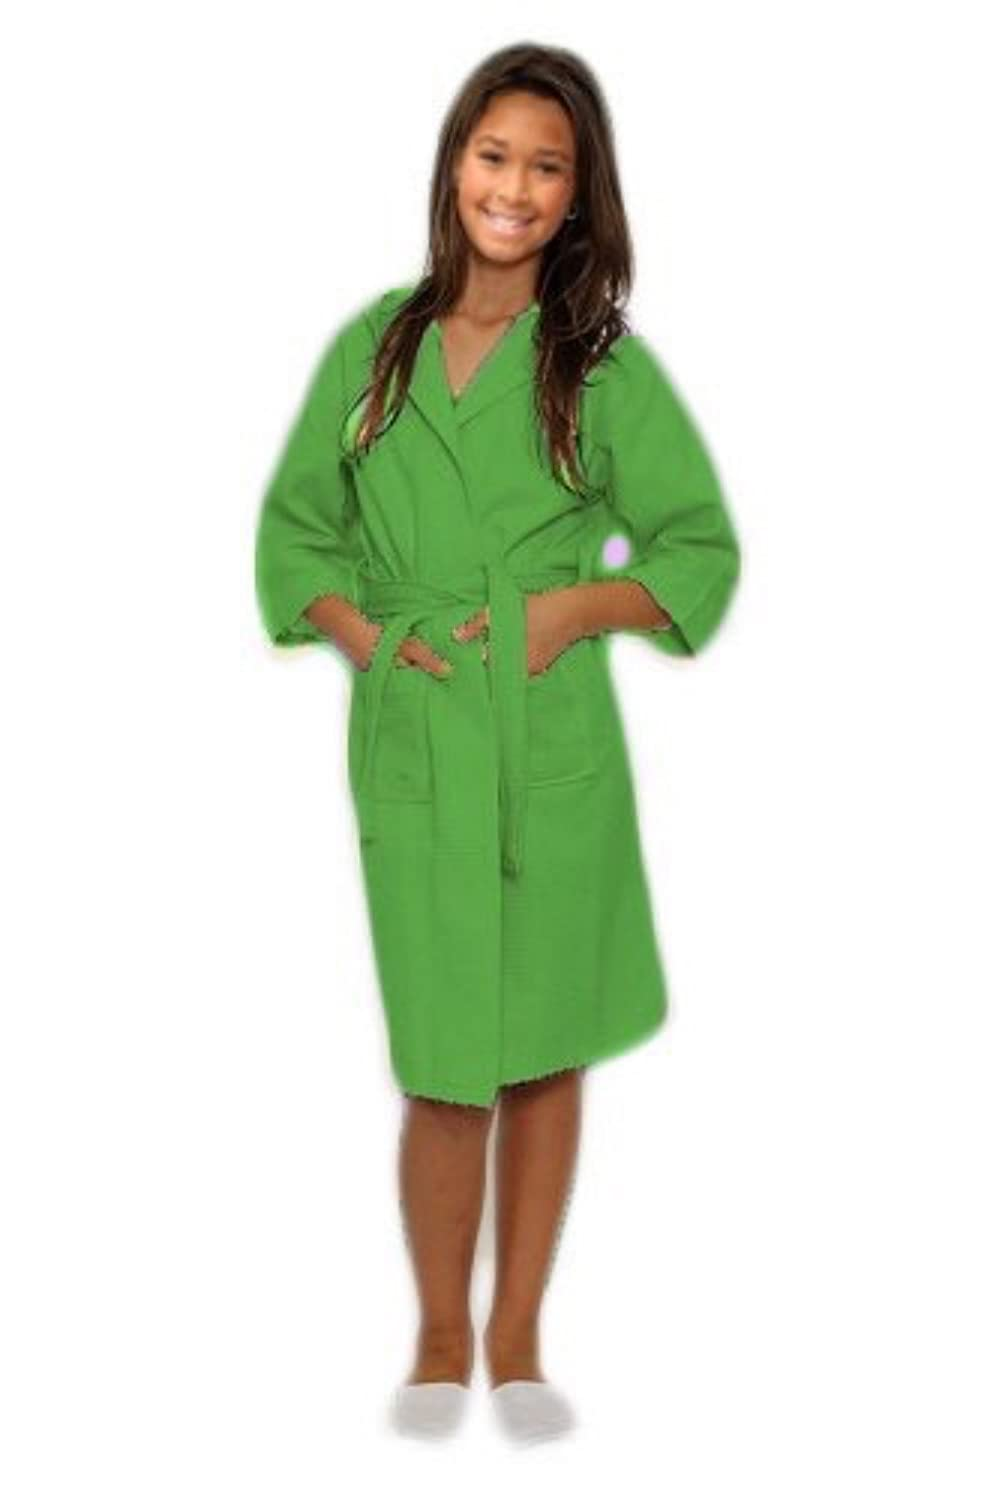 TowelSoft Kids Waffle Hooded Bathrobe - Boys Girls Unisex Robe